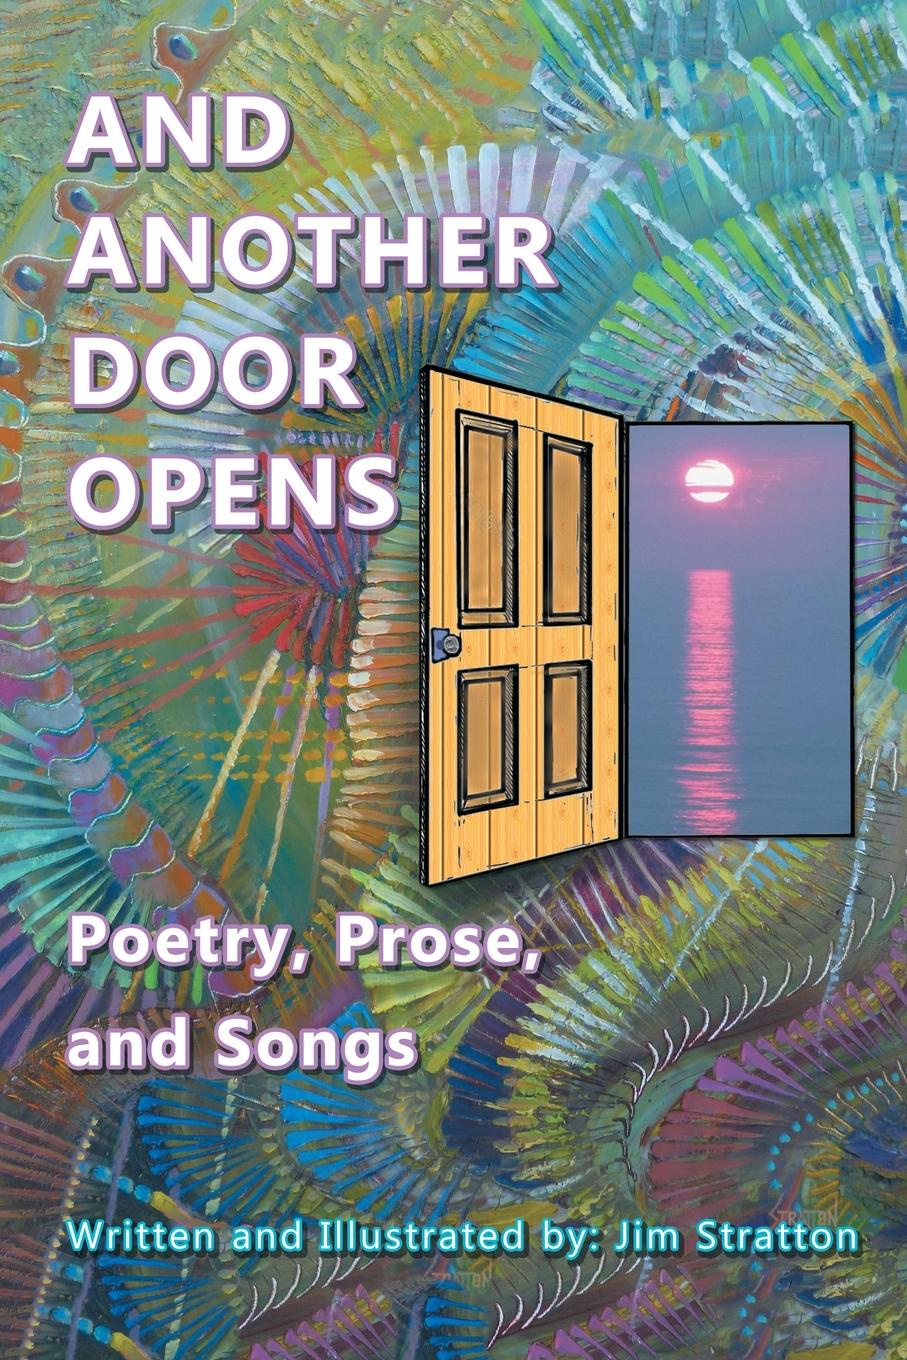 Jim Stratton And Another Door Opens. Poetry, Prose, and Songs family family old songs new songs